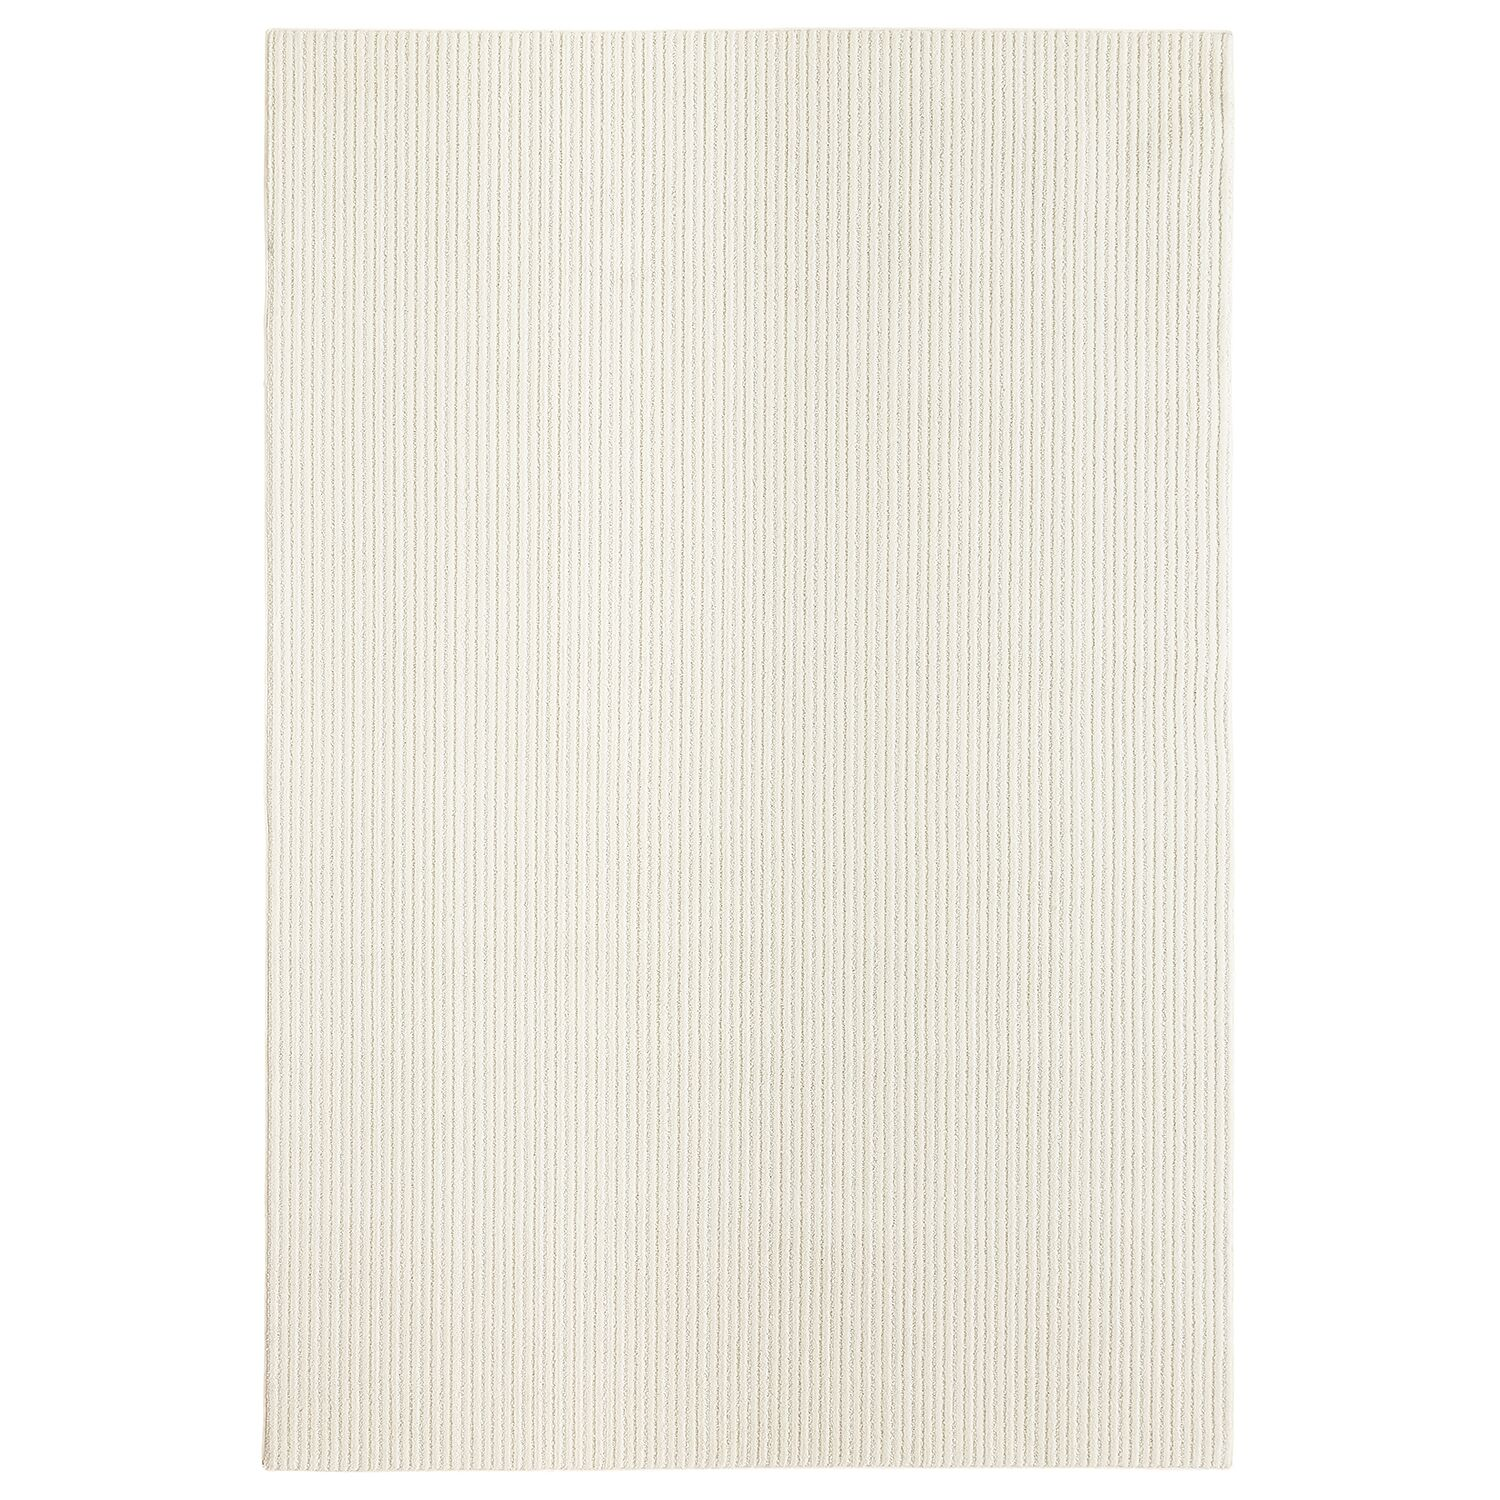 Bettie Hand-Tufted Ivory Area Rug Rug Size: Rectangle 6' x 9'